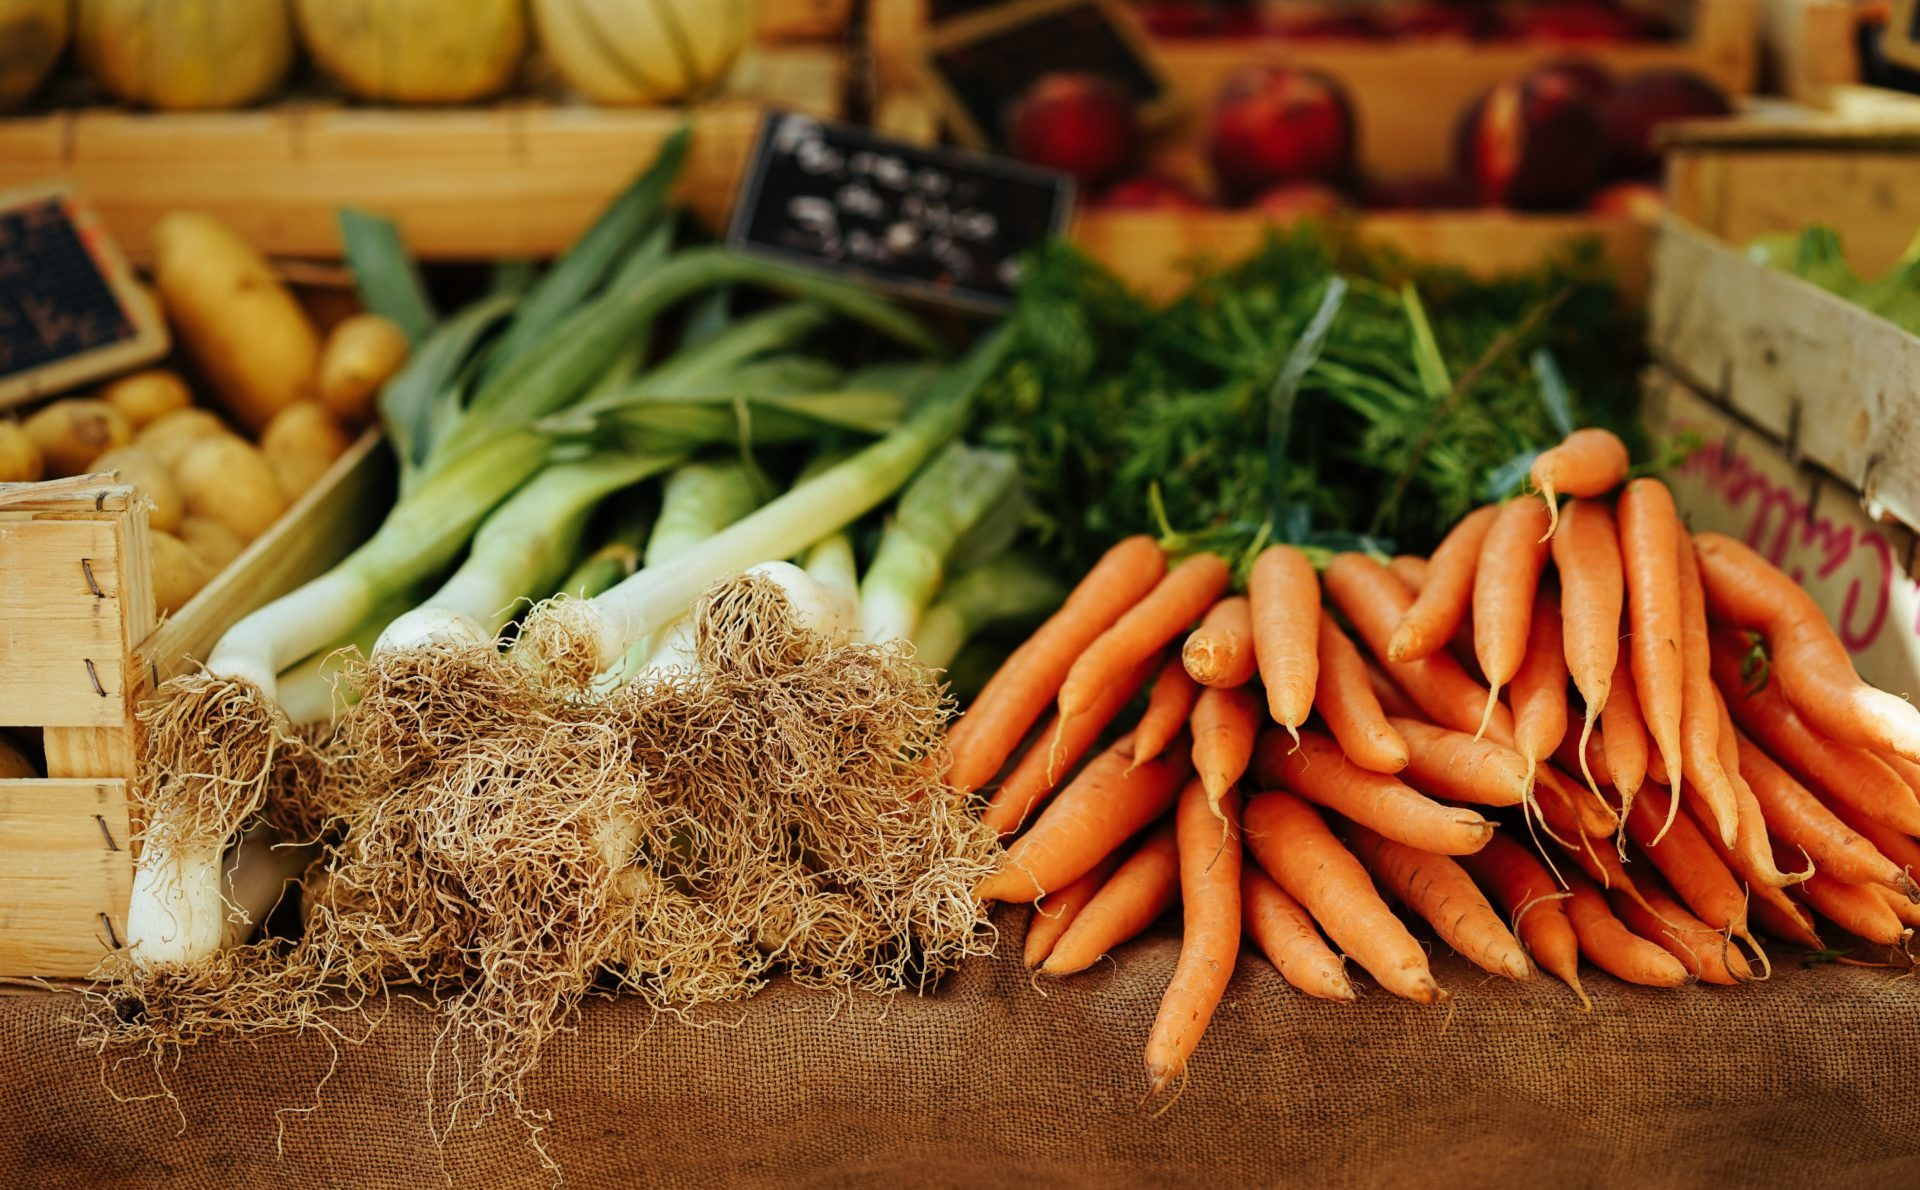 Vegetables with roots